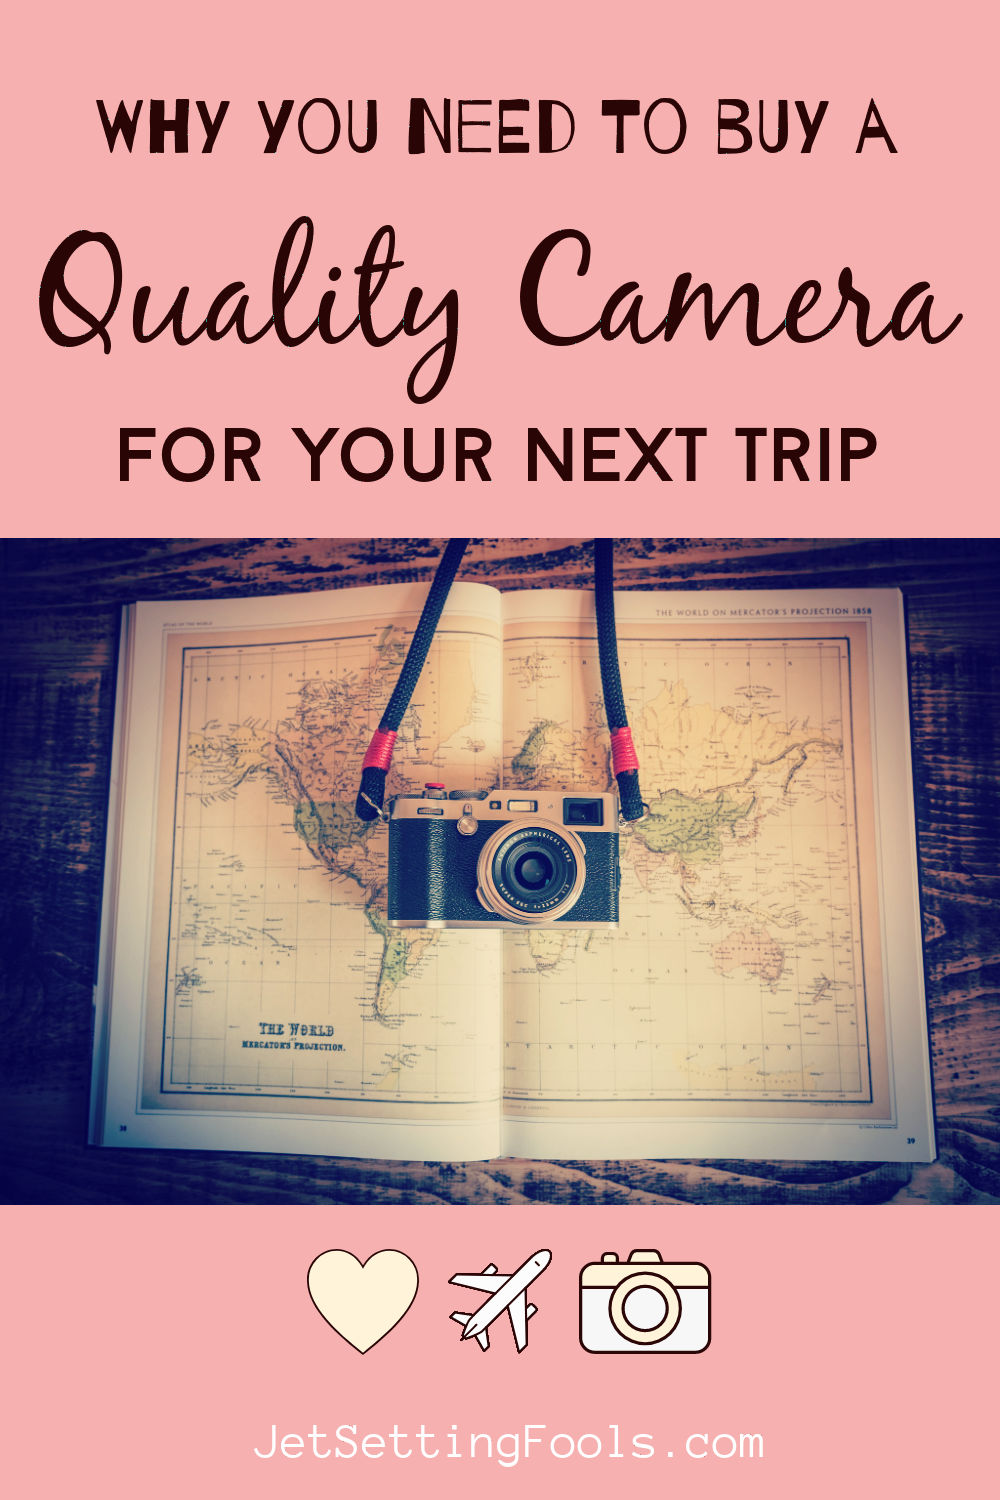 Buy a Quality Camera for Your Next Trip by JetSettingFools.com